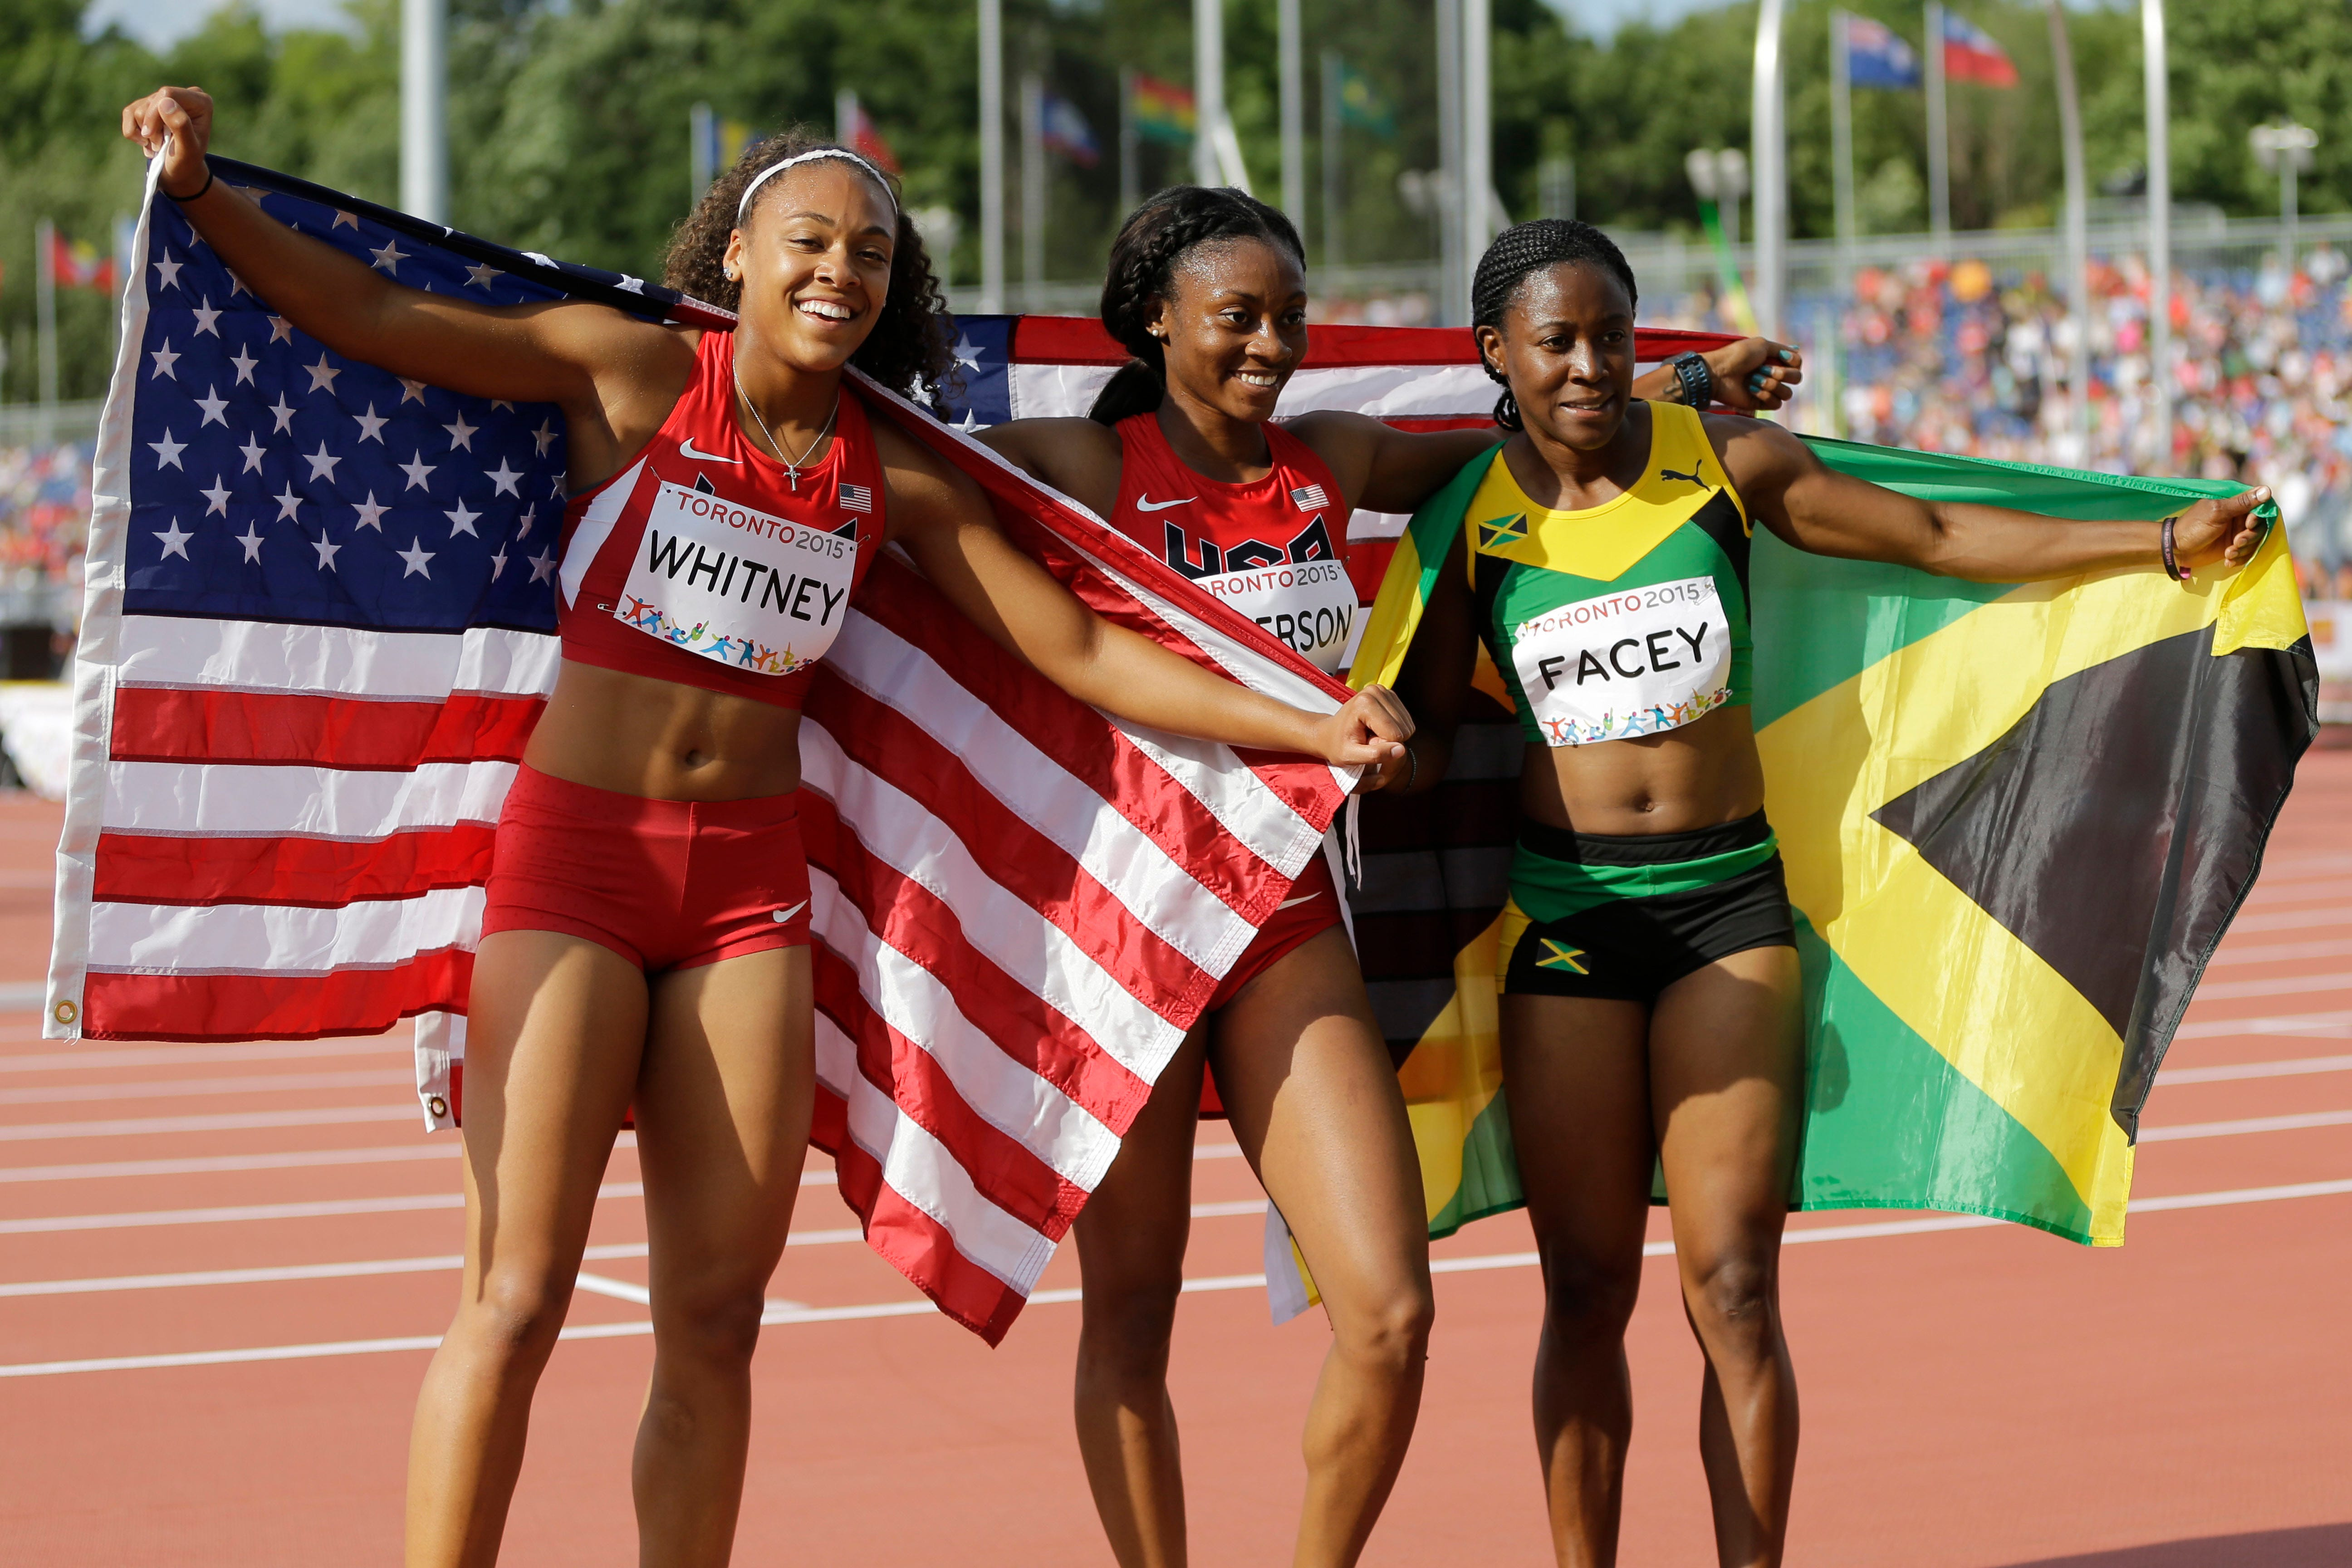 Being One of the First Sprinters to go Pro Out of High School with Kaylin Whitney